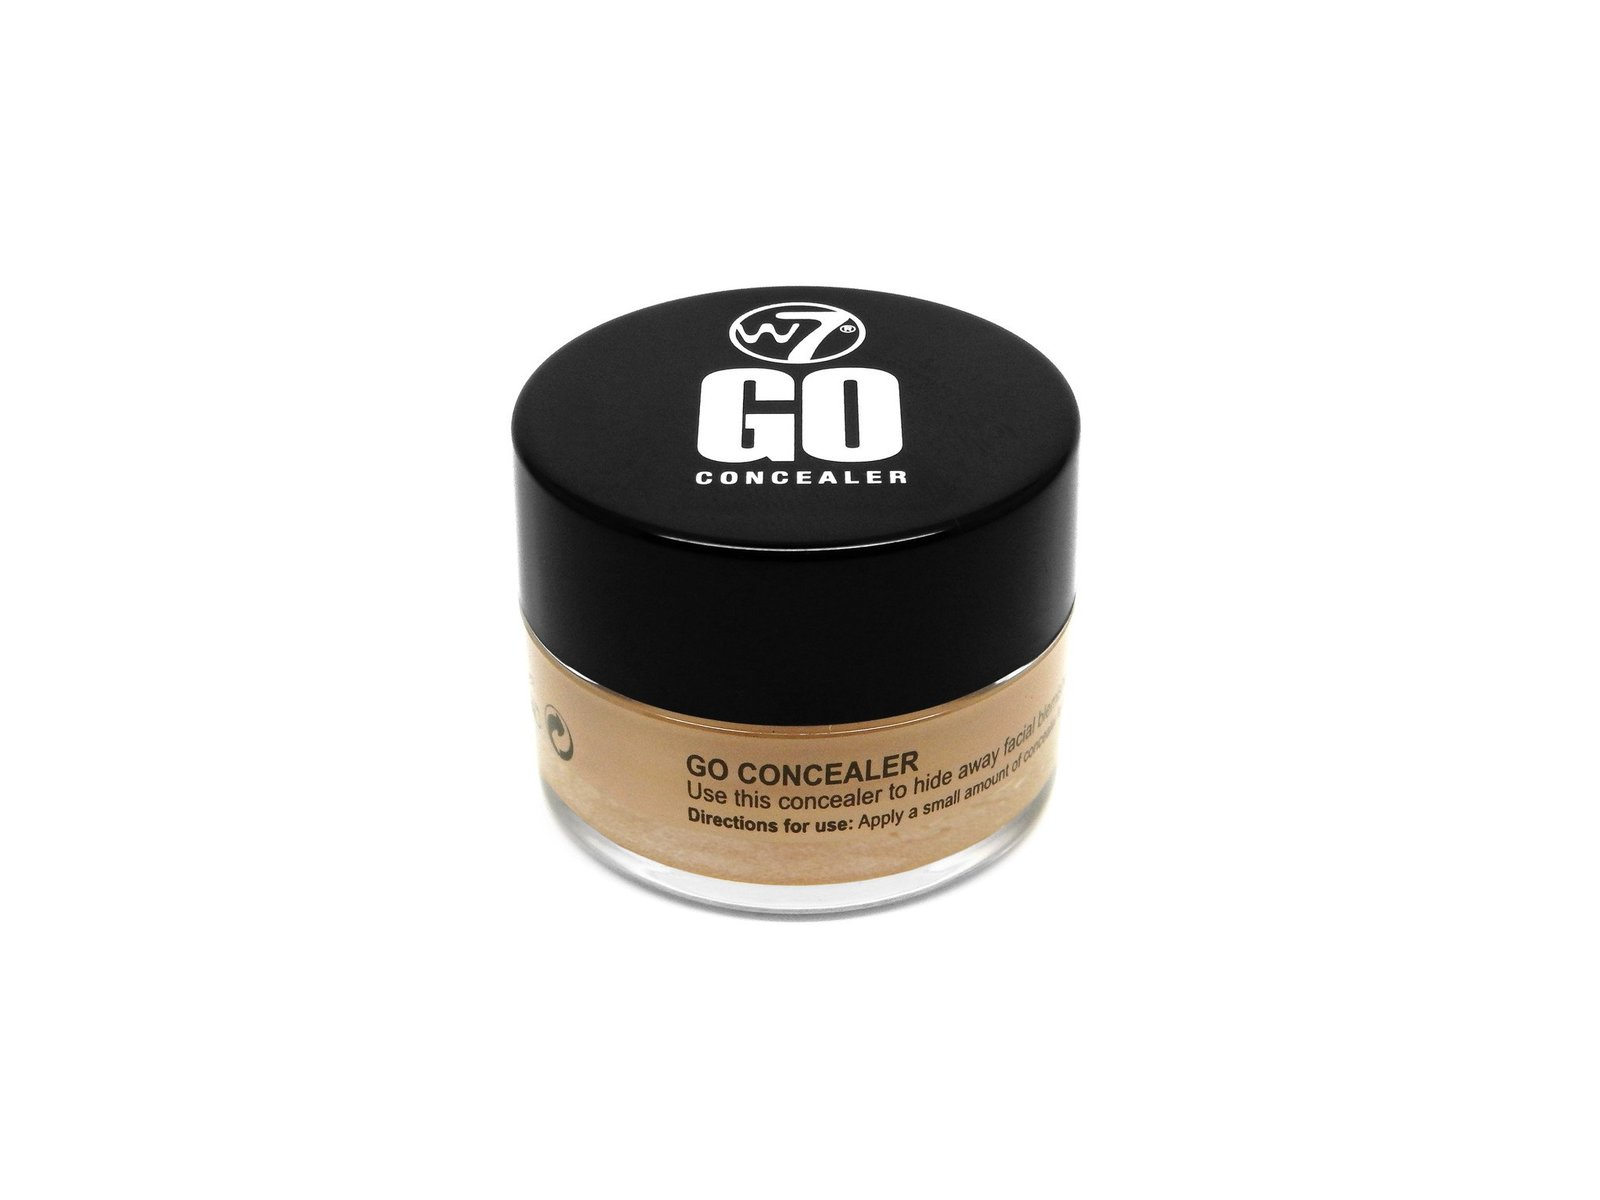 W7 Go Concealer (Medium) image